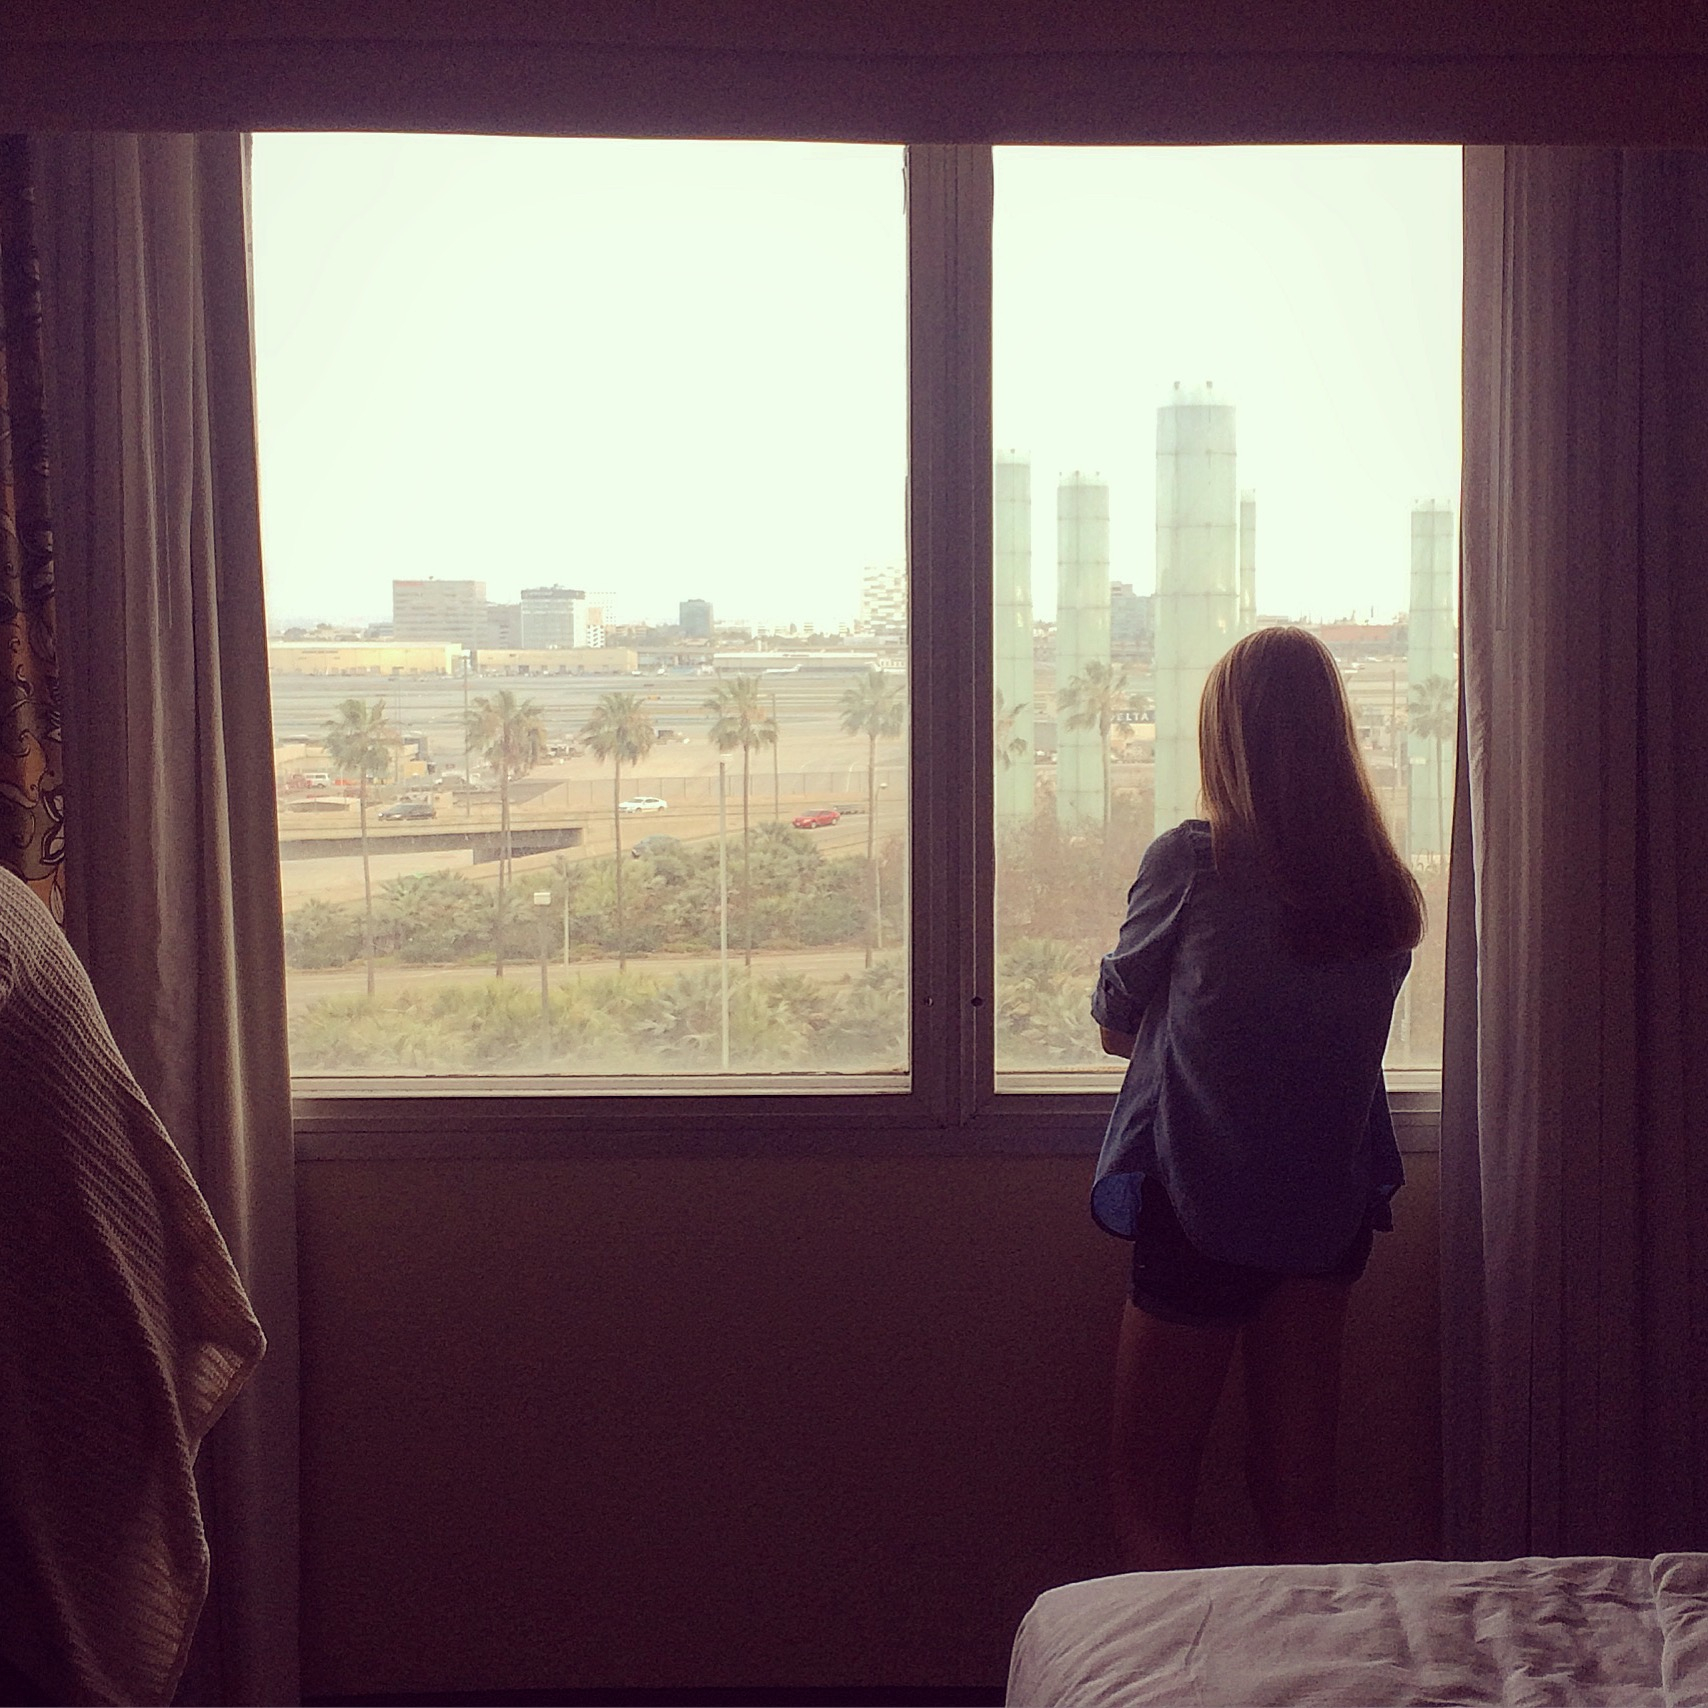 Kendall, gazing out the hotel window at the hazy LA skyline, prior to leaving for Fiji.